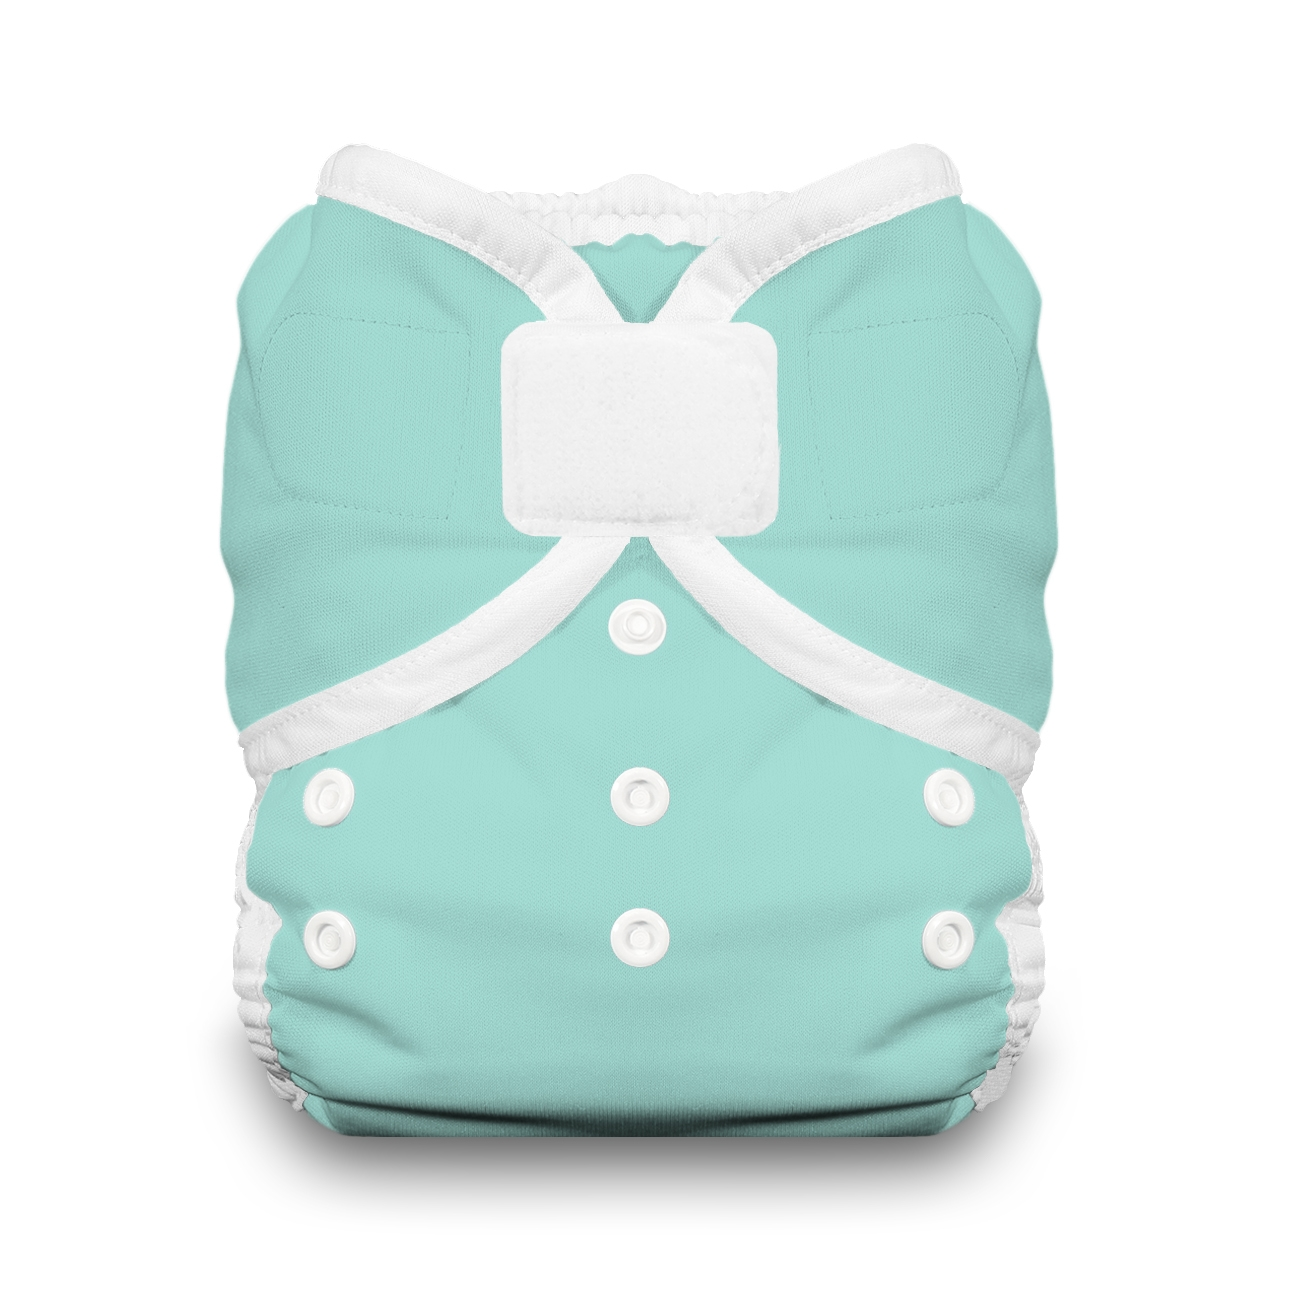 Baby Registry Favorites: Diapers, Strollers, Bouncer Seats, and Bath ...